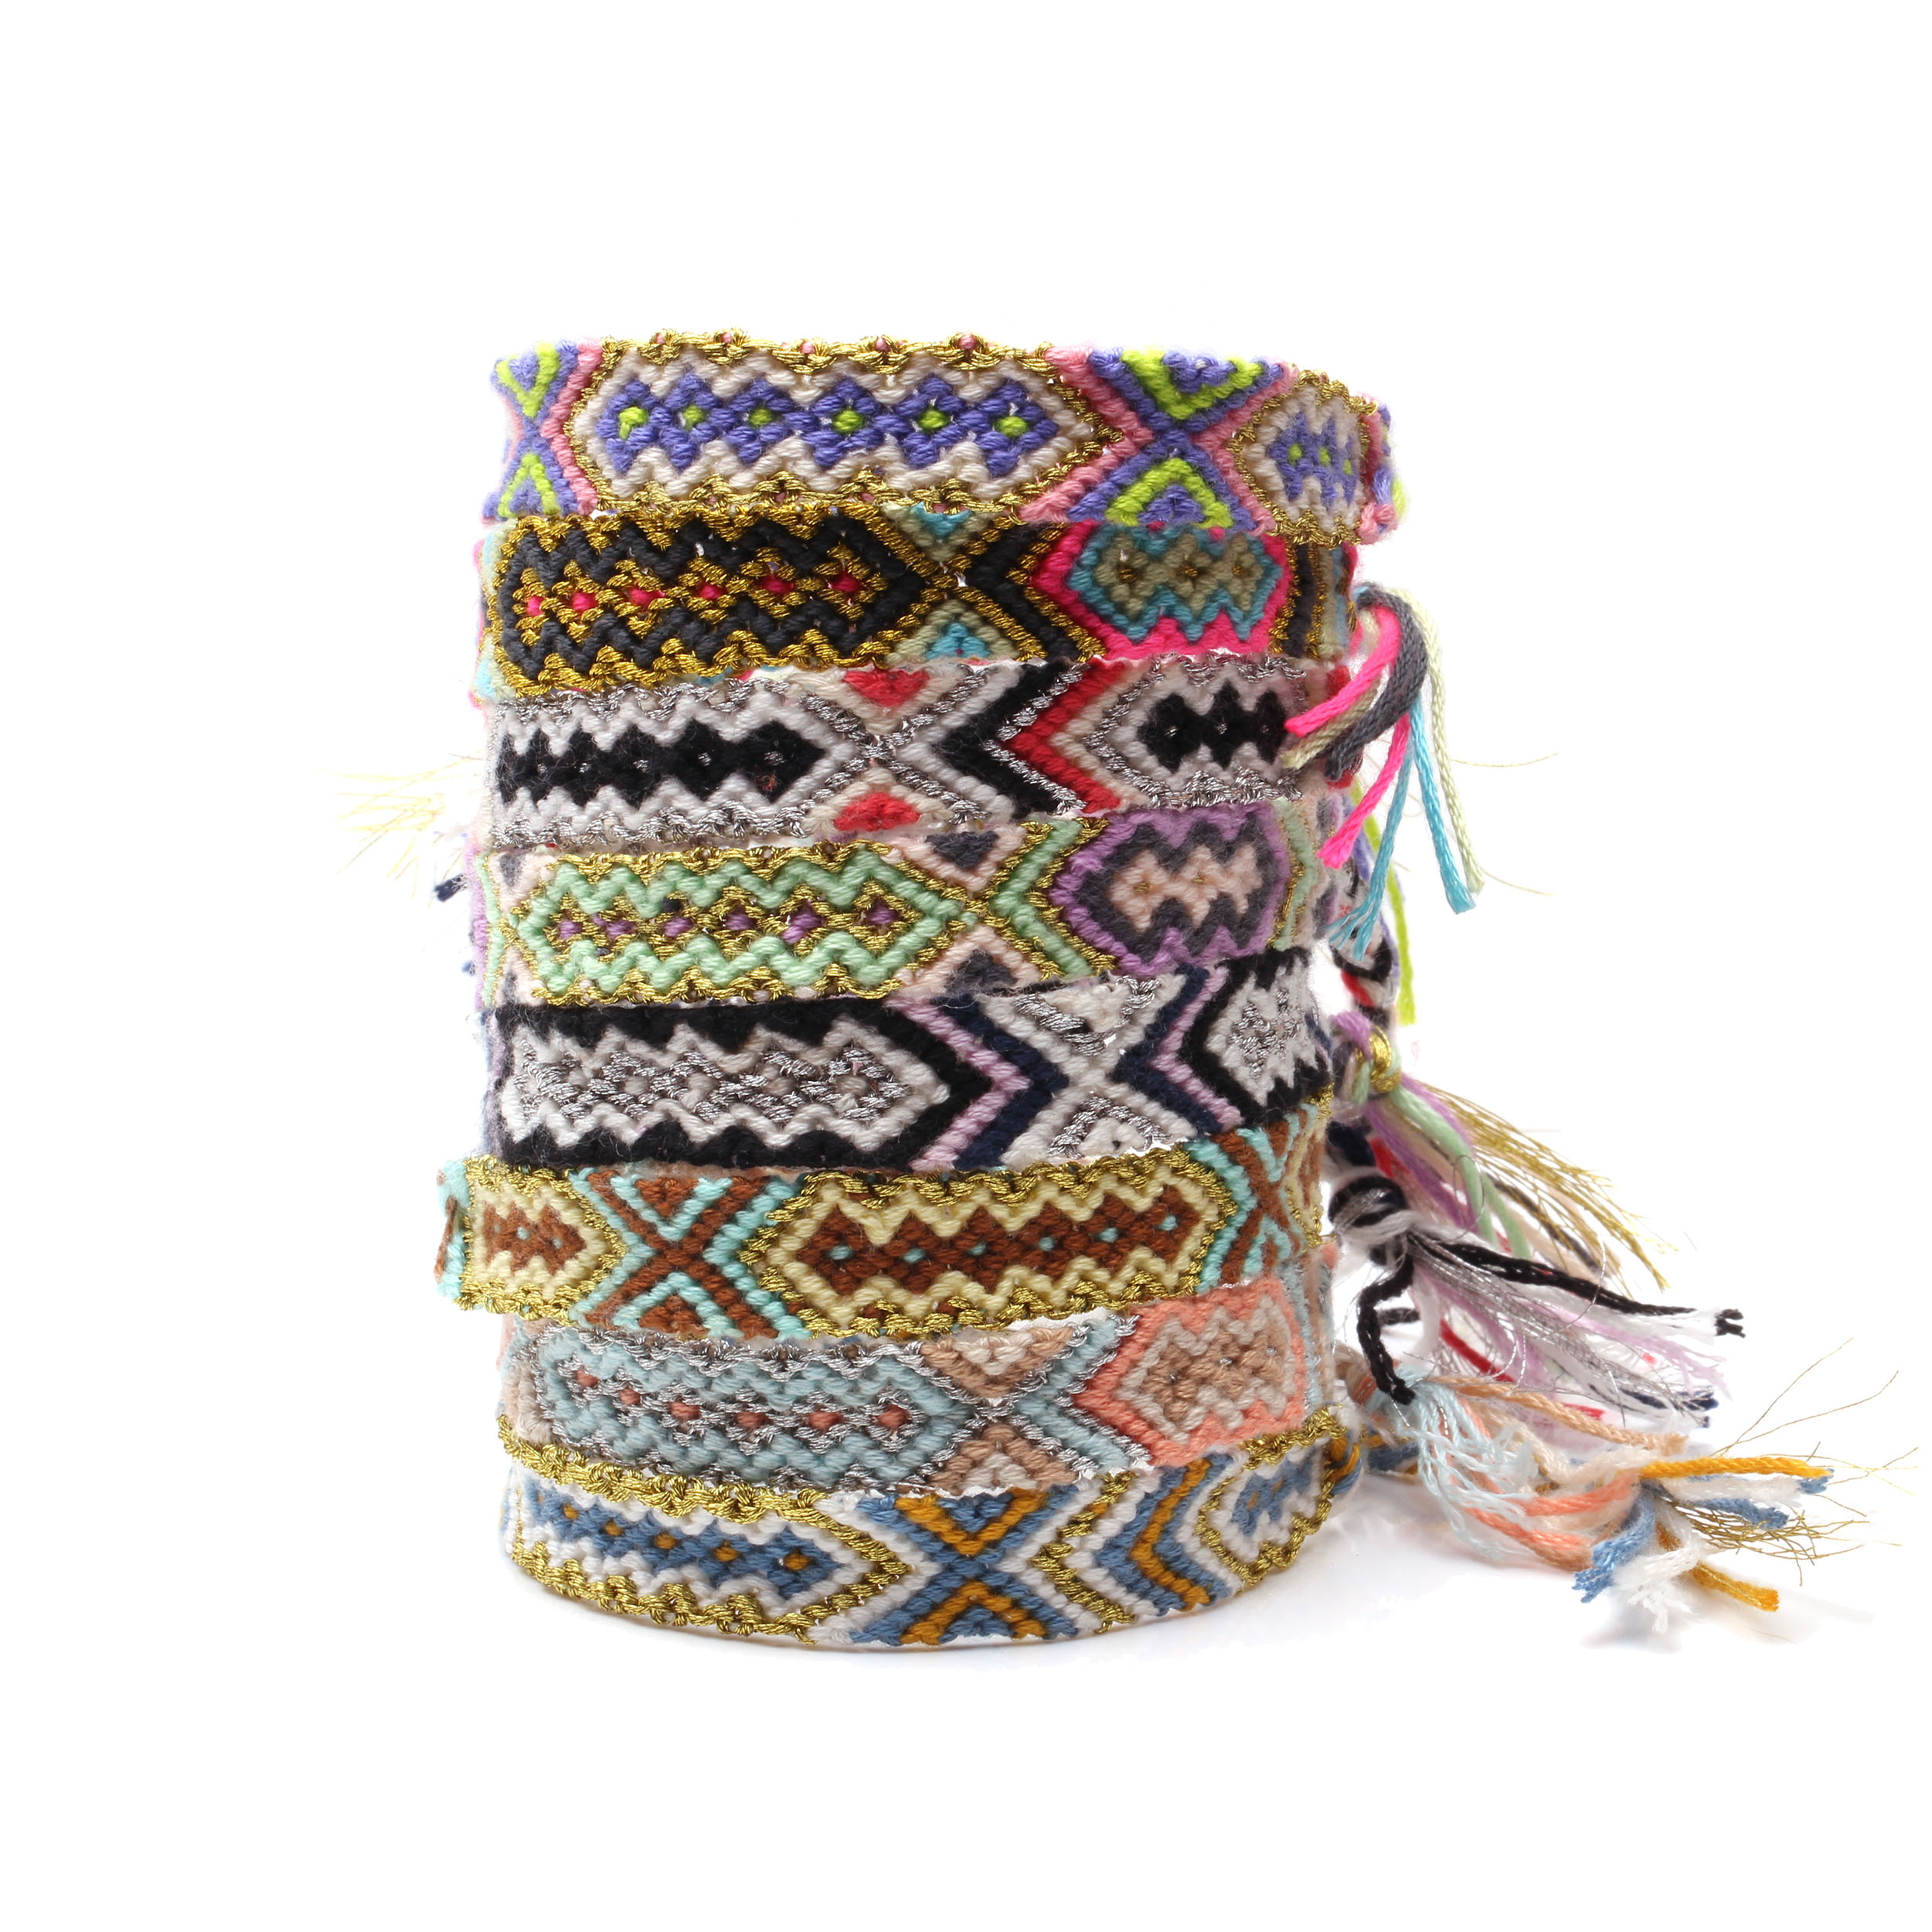 Boho Colorful Embroidery Thread Braided Friendship Bracelet Women Men Hippie Aztec Mayan Traditional Ethnic Woven Bracelets Gift